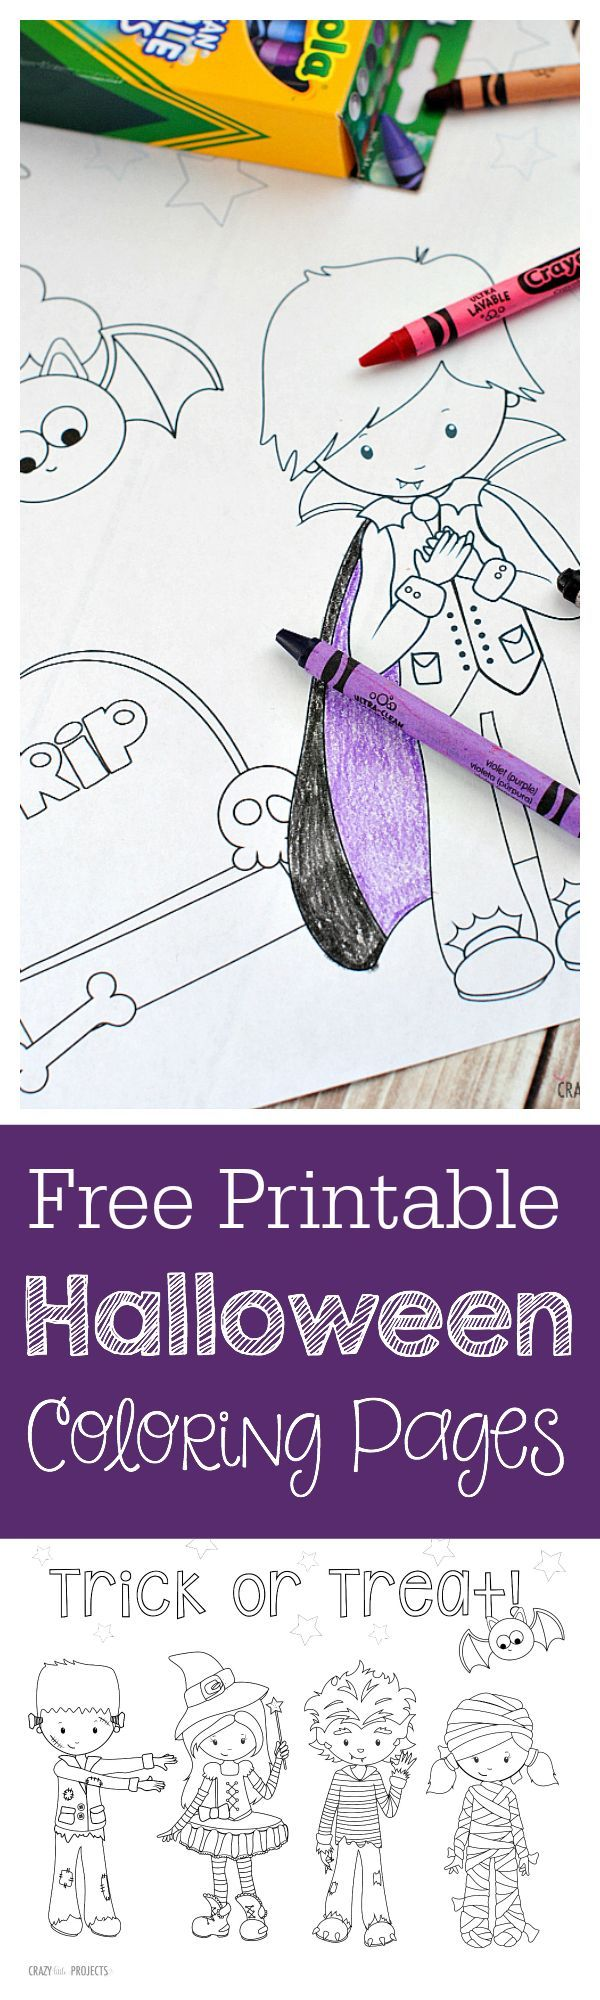 Amber Price Free Thanksgiving Coloring Pages